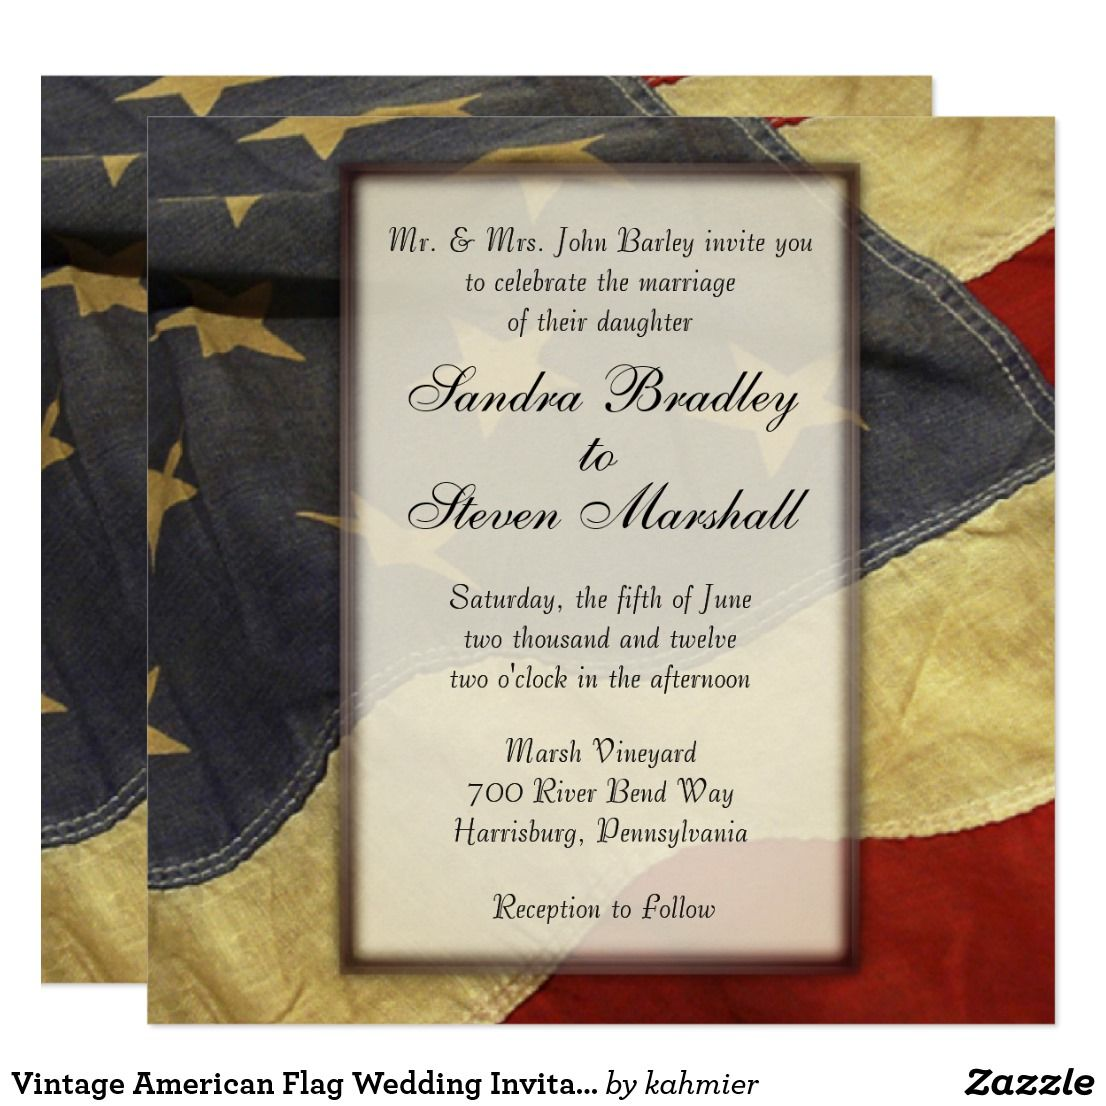 Vintage American Flag Wedding Invitations | Anytime Cards and ...